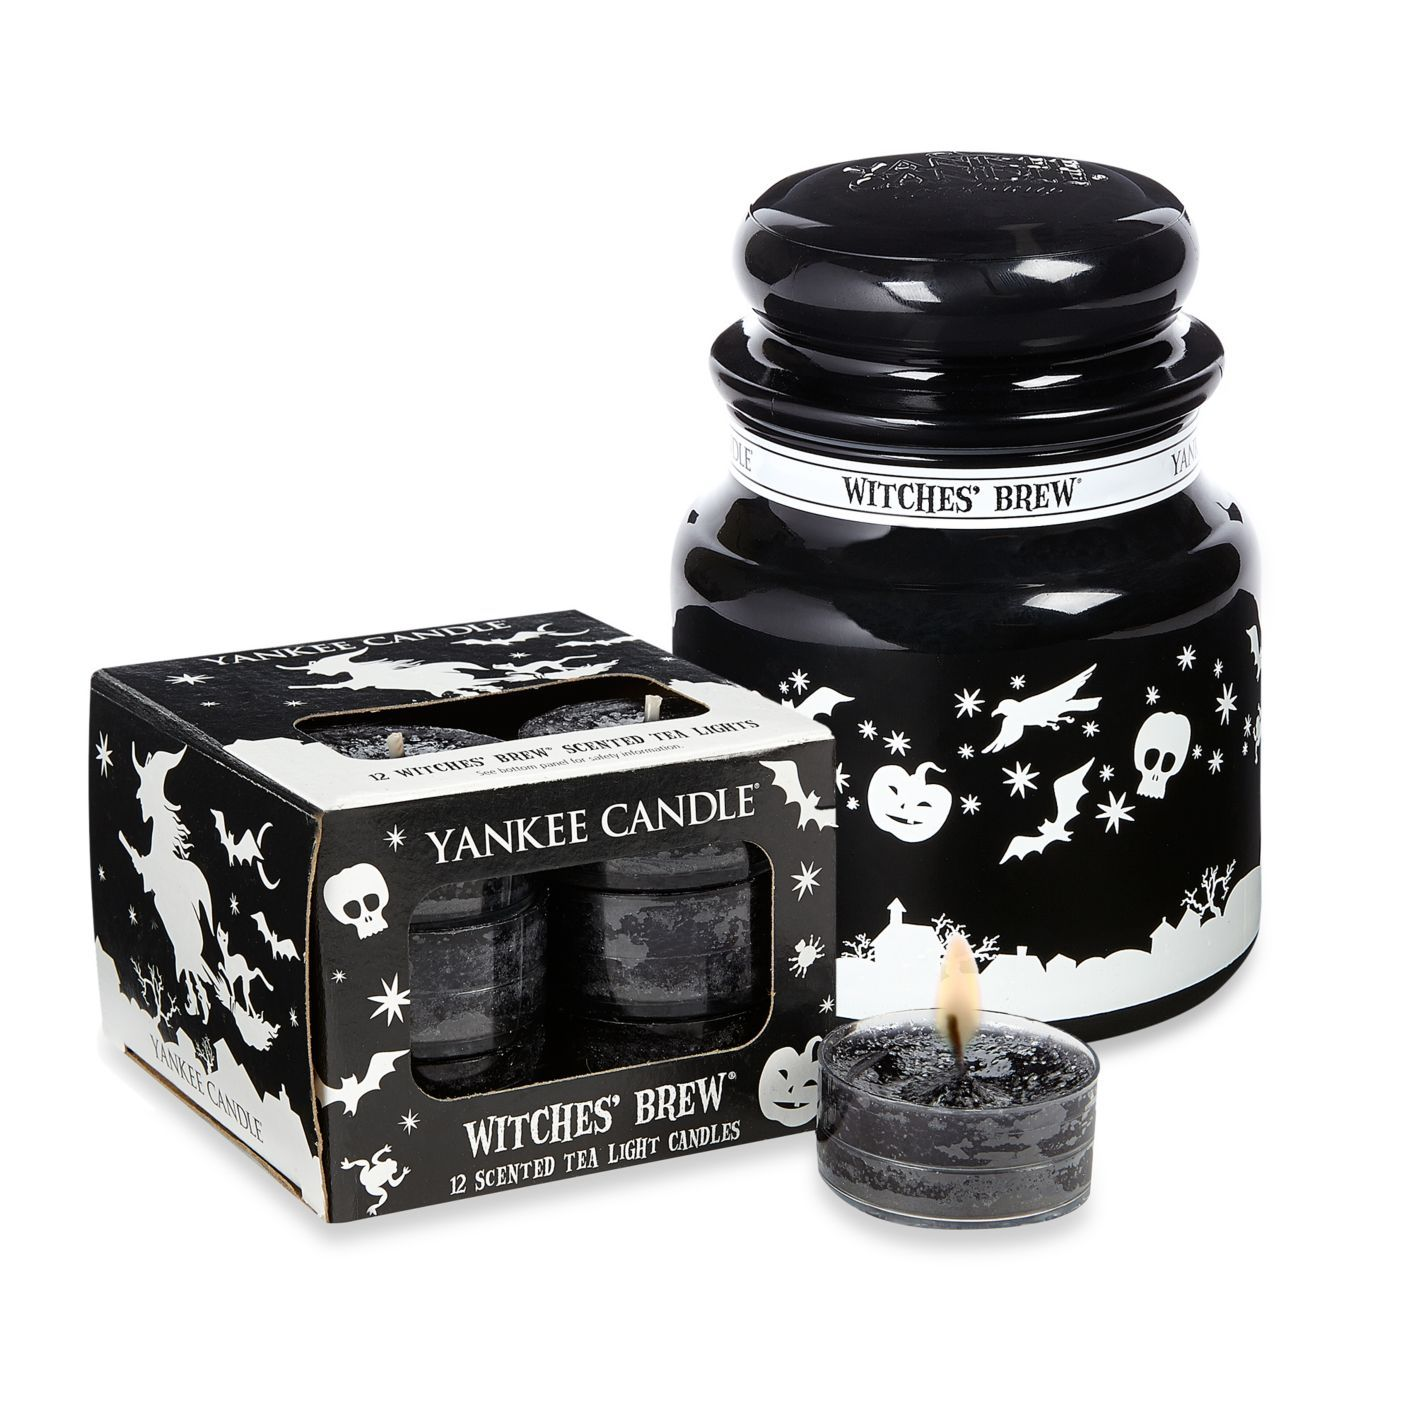 I recommend using yankee candle witchesu brew the smell is really